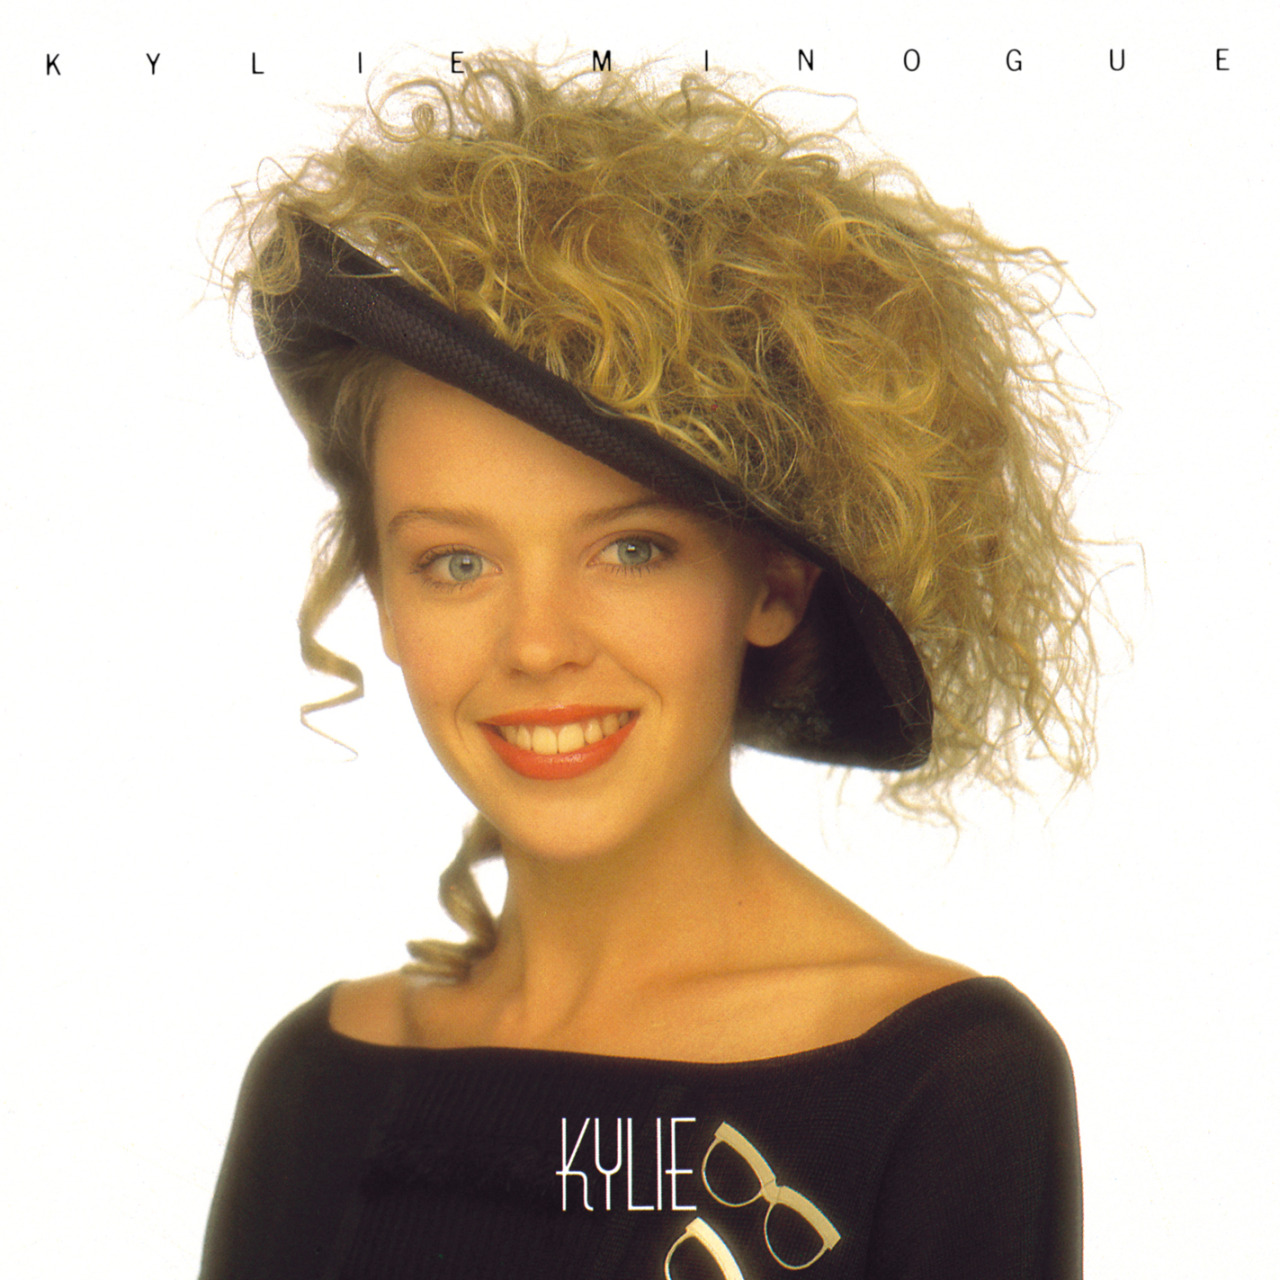 REVIEW: 'Kylie' - Kylie Minogue